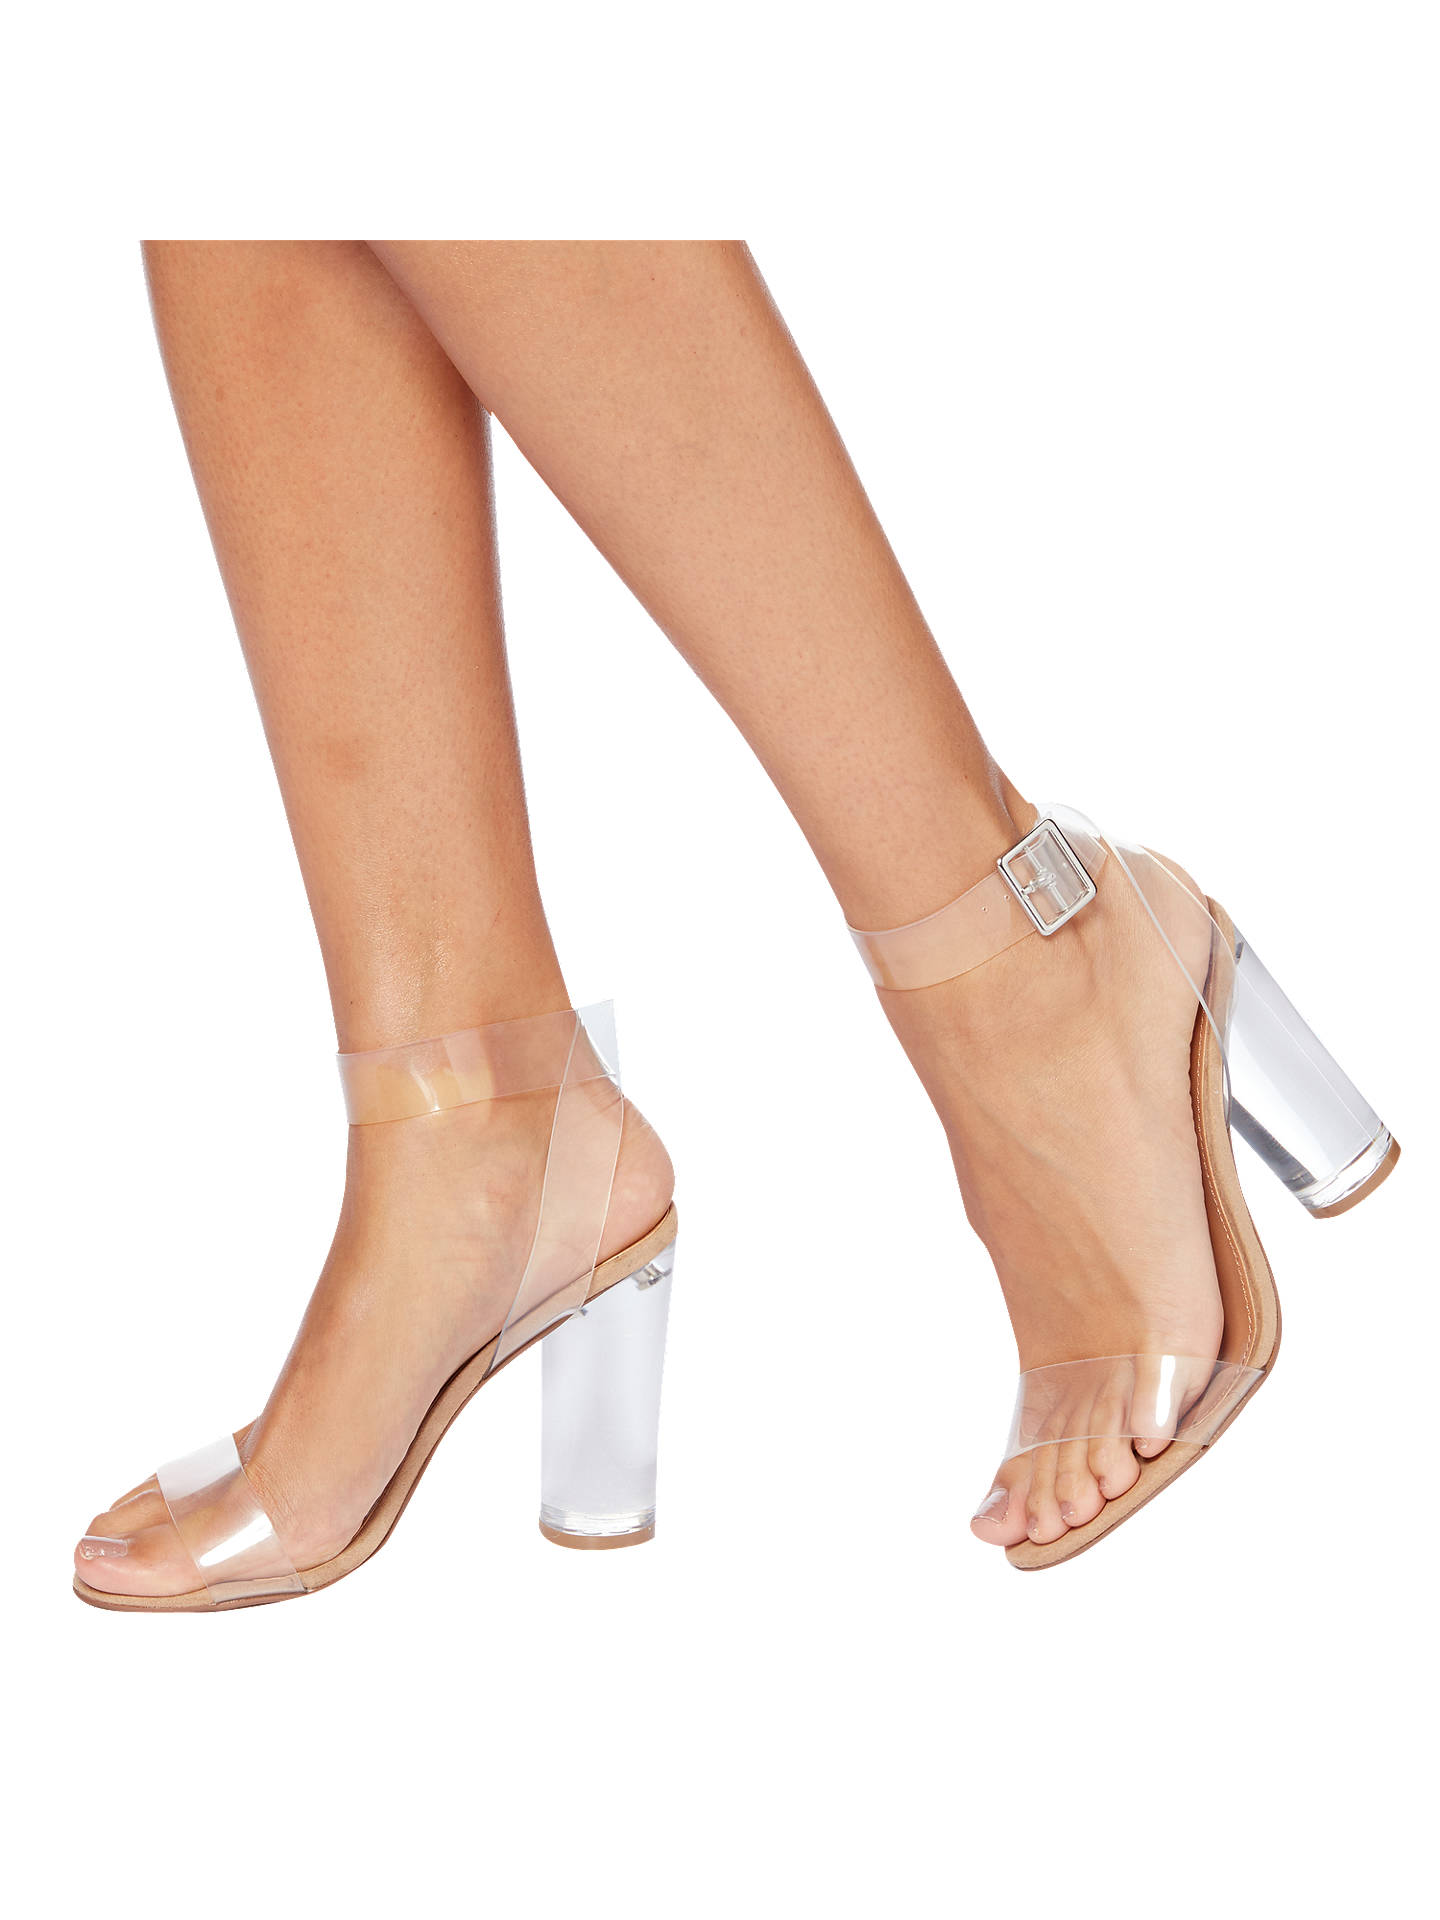 ff17a604609 ... Buy Steve Madden Clearer Strappy Sandals